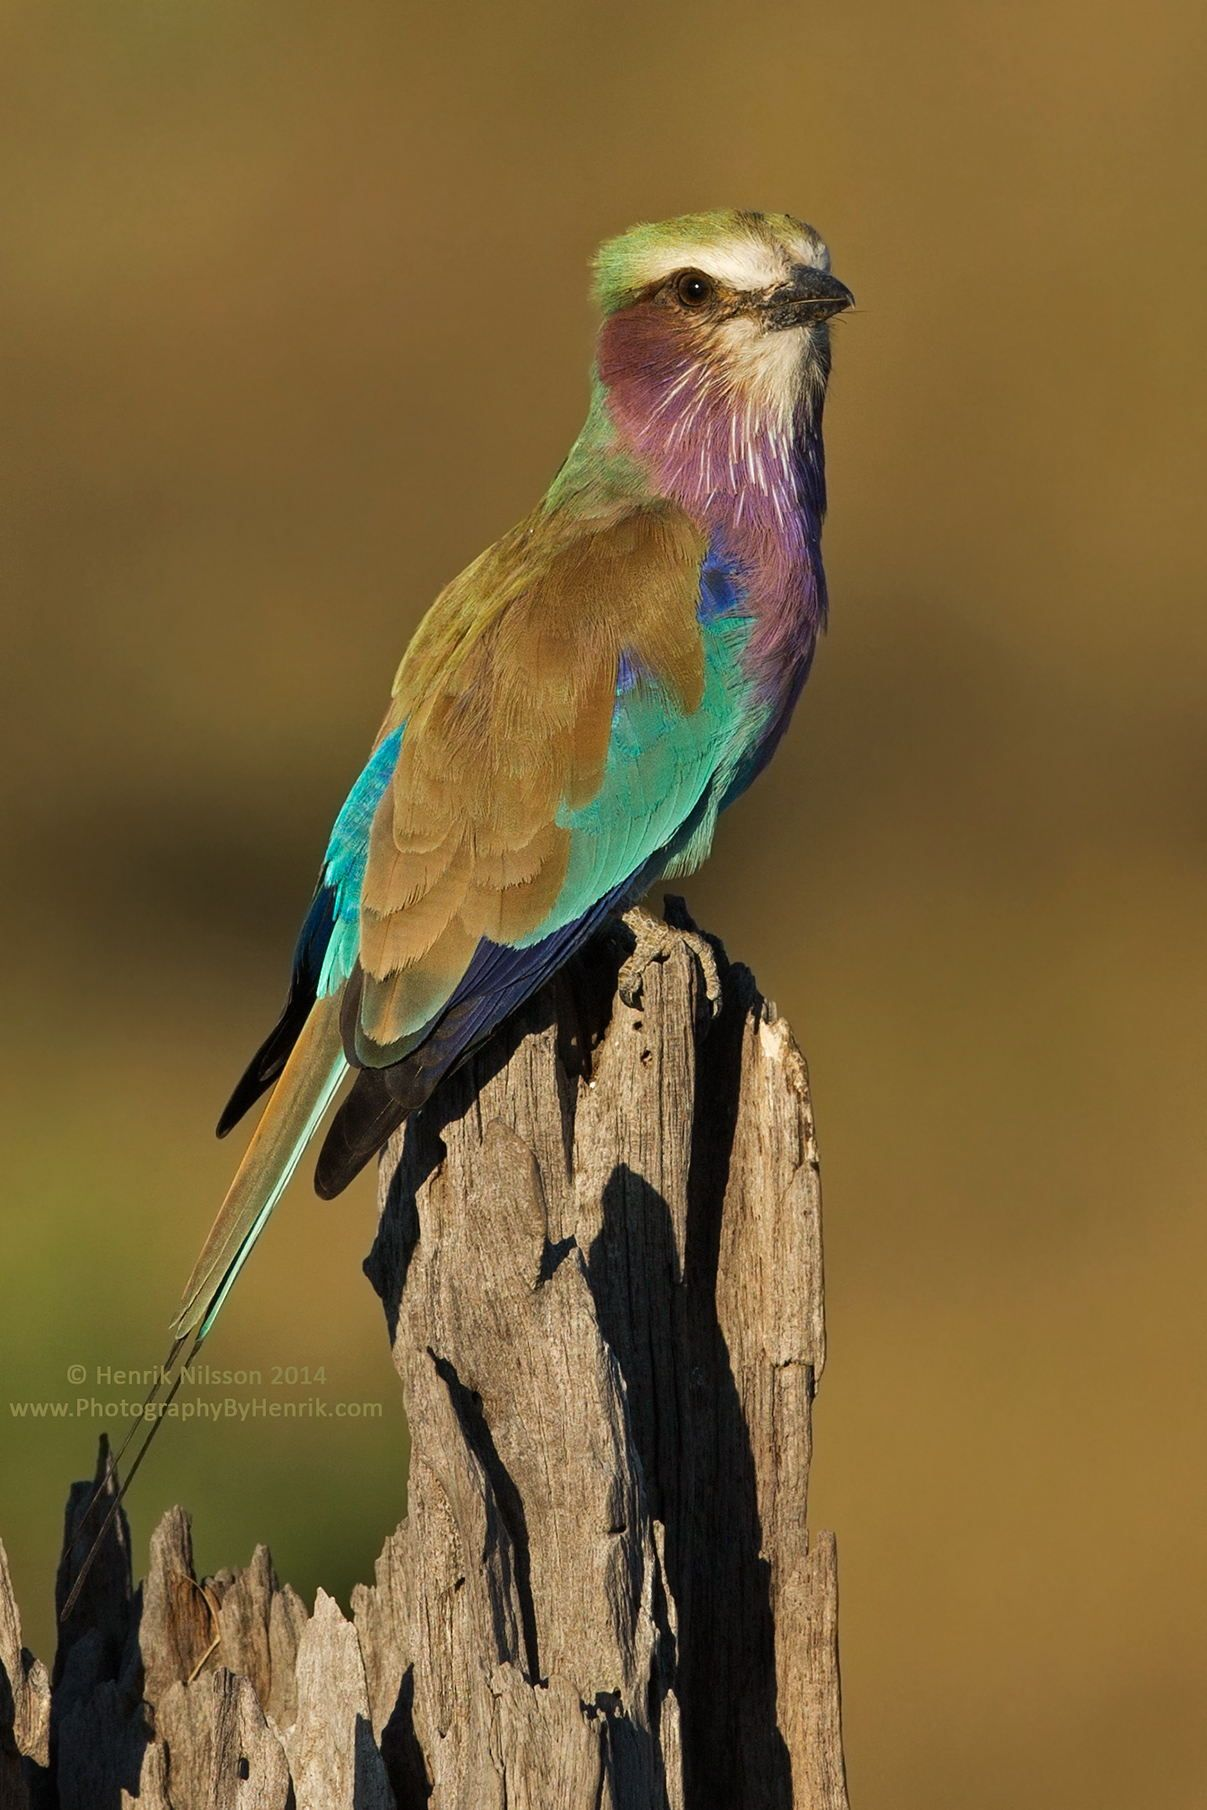 Lilac Breasted Roller by Henrik Nilsson on 500px